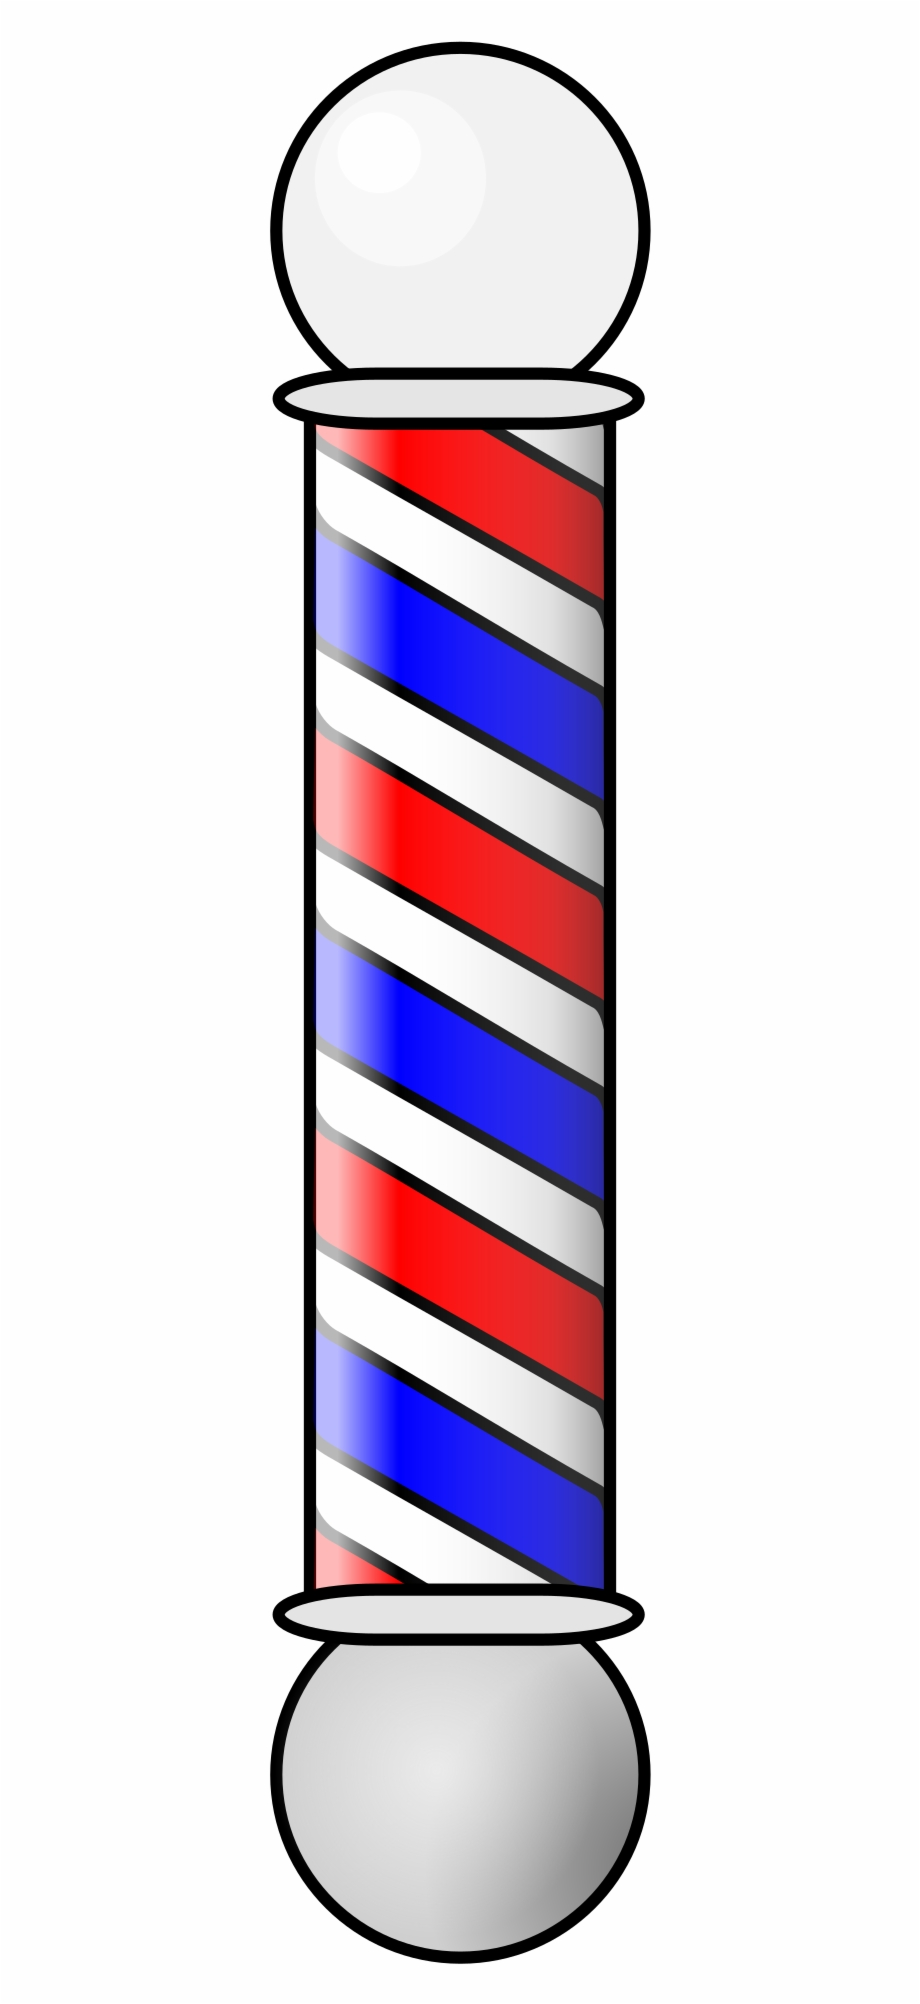 Clipart barber pole picture freeuse stock Vector Freeuse Download Clippers Vector Barber Pole - Barber Shop ... picture freeuse stock